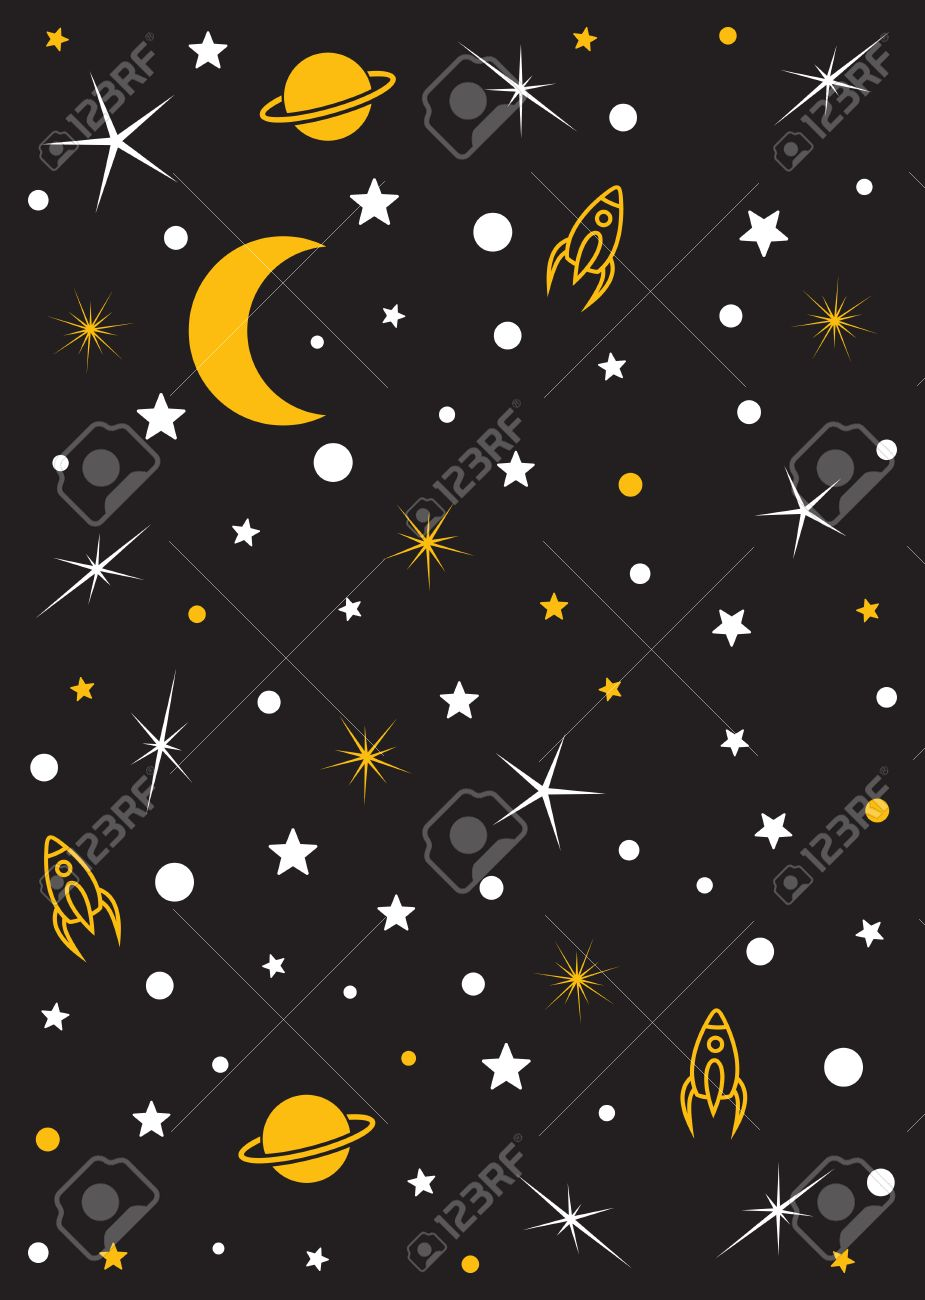 Moon, stars, planets, space vector background - 47769874